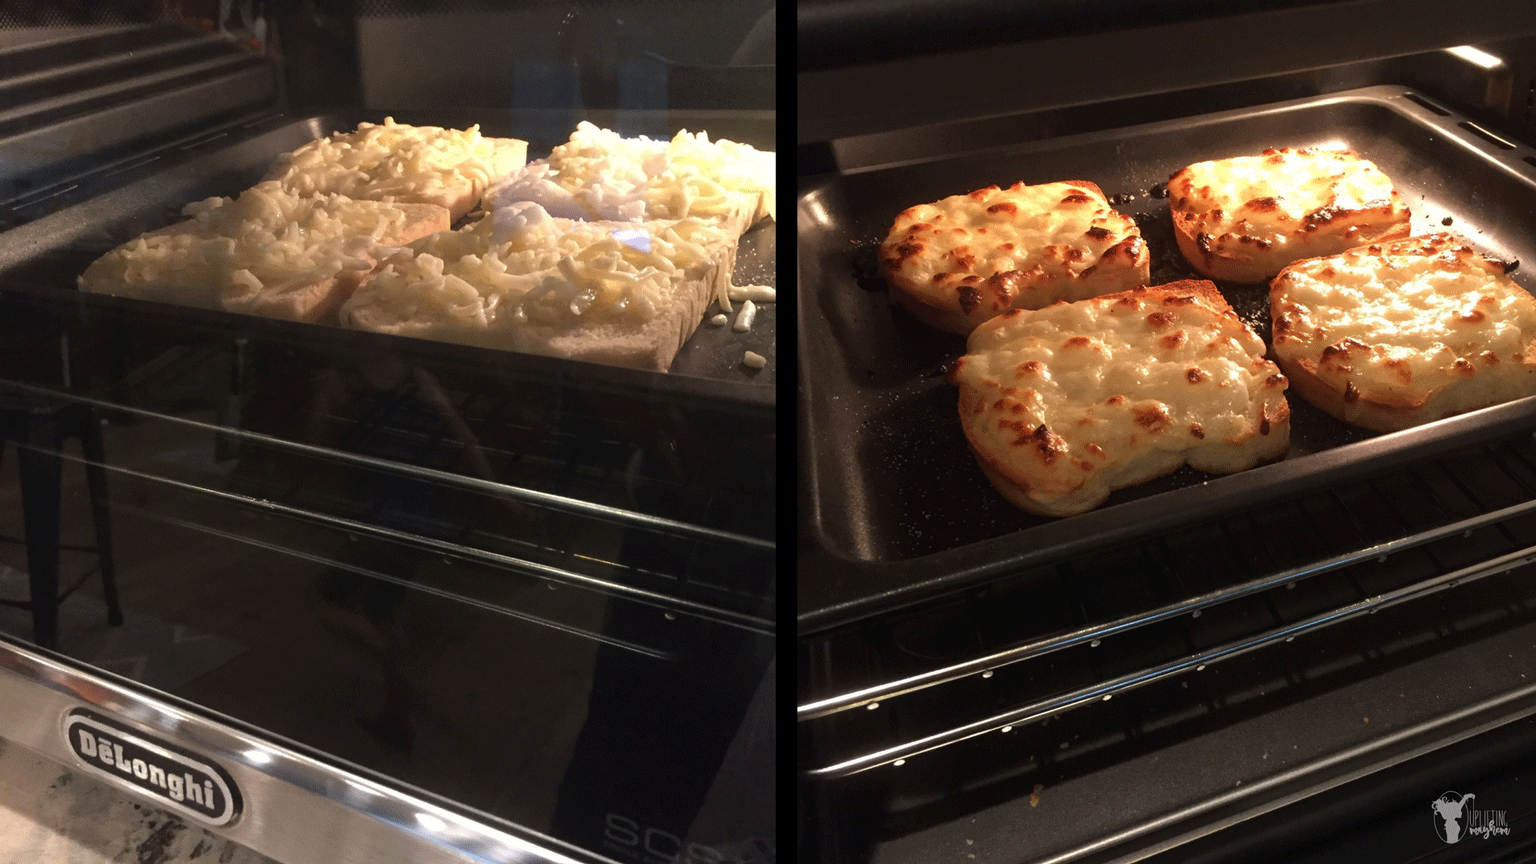 Perks to owning a countertop oven